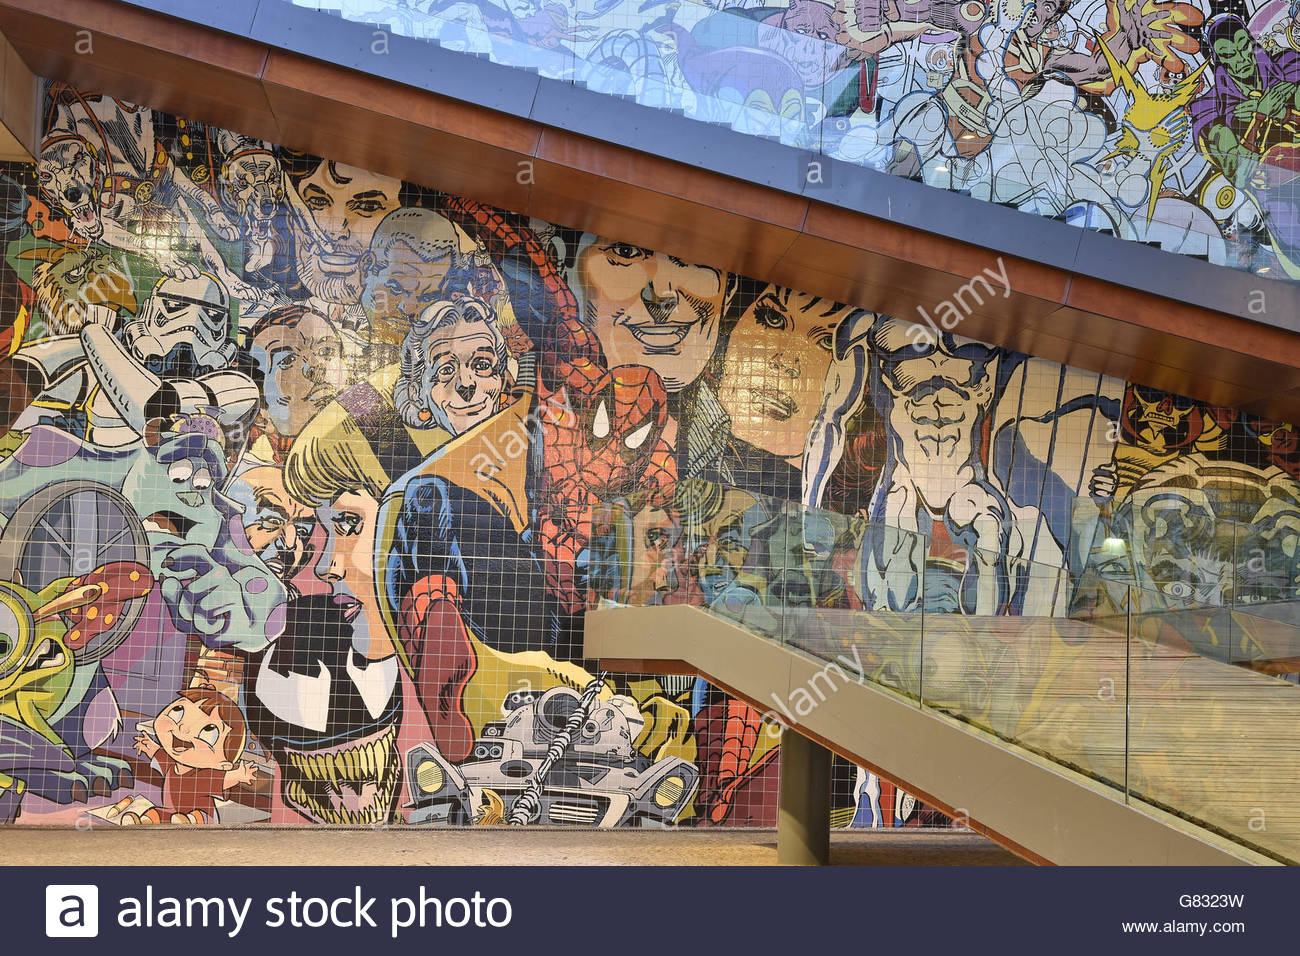 Comics characters illustrated tiled wall outside ''VIP Arts Hotel'' located in Parque das Nações - Stock Image